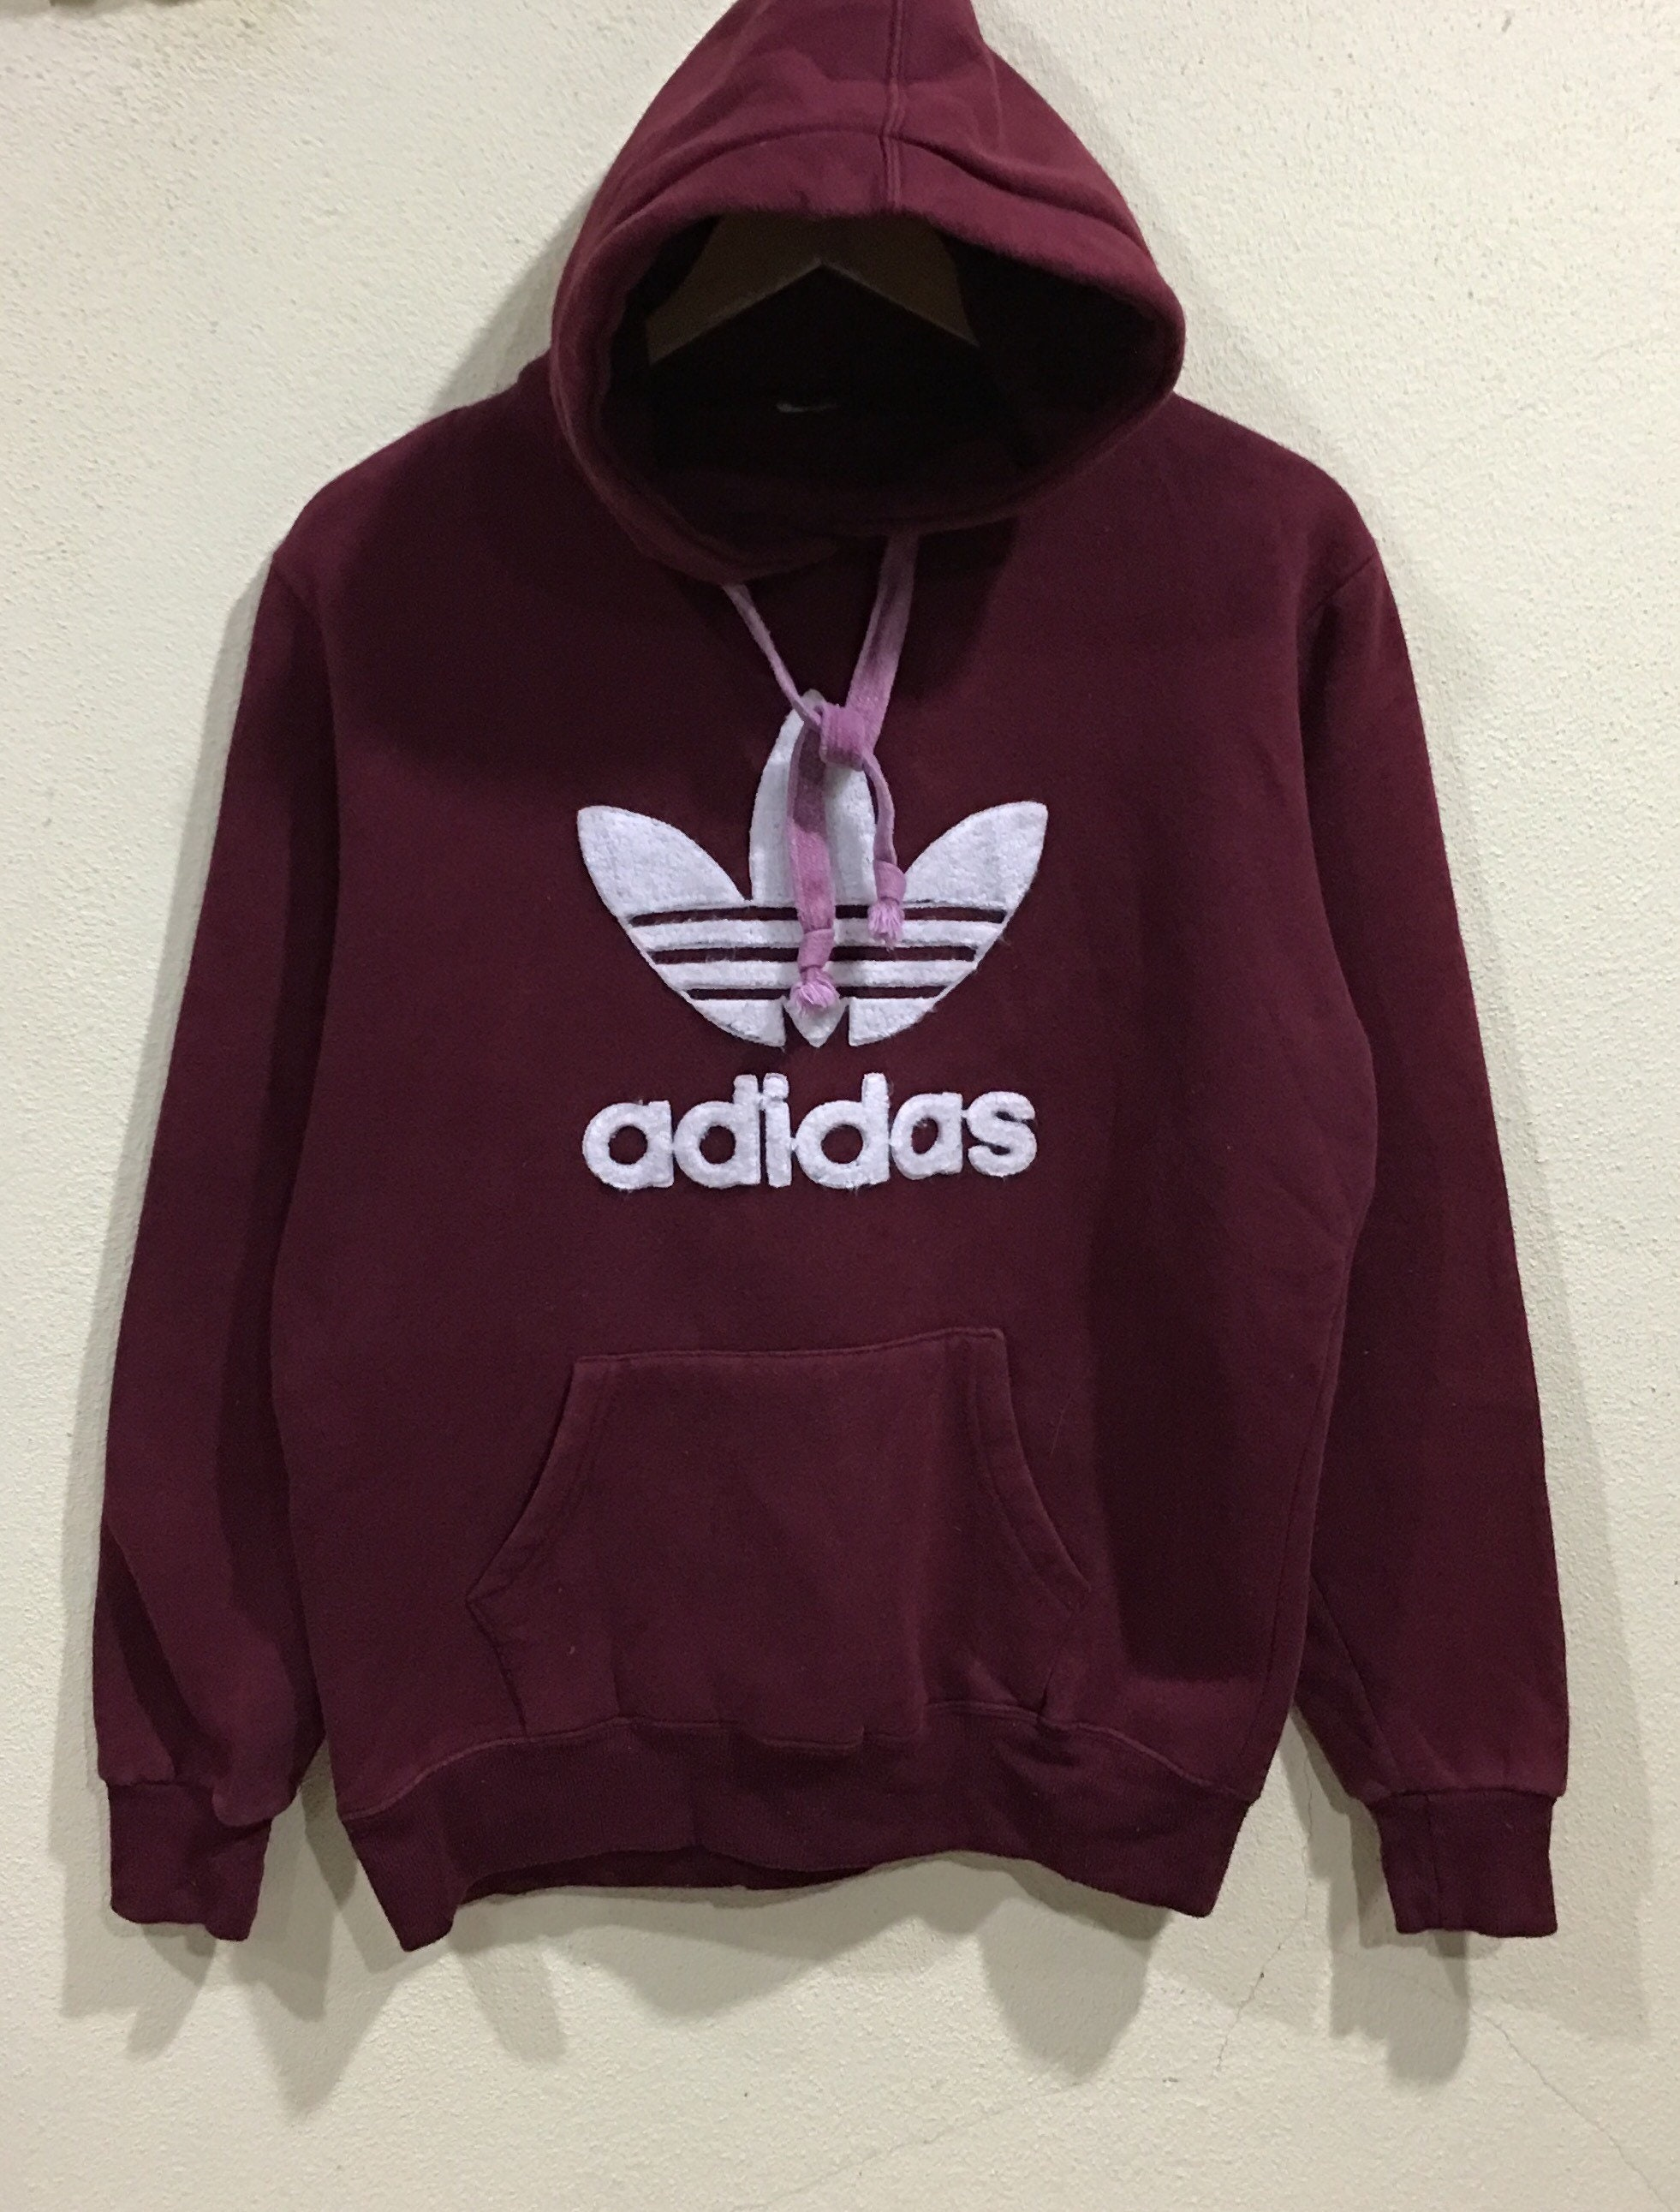 Hoodie Hop Adidas Spellout Hip Pullover Sweater Club Sportwear RareVintage Swag Big Logo Jumper bfy76g